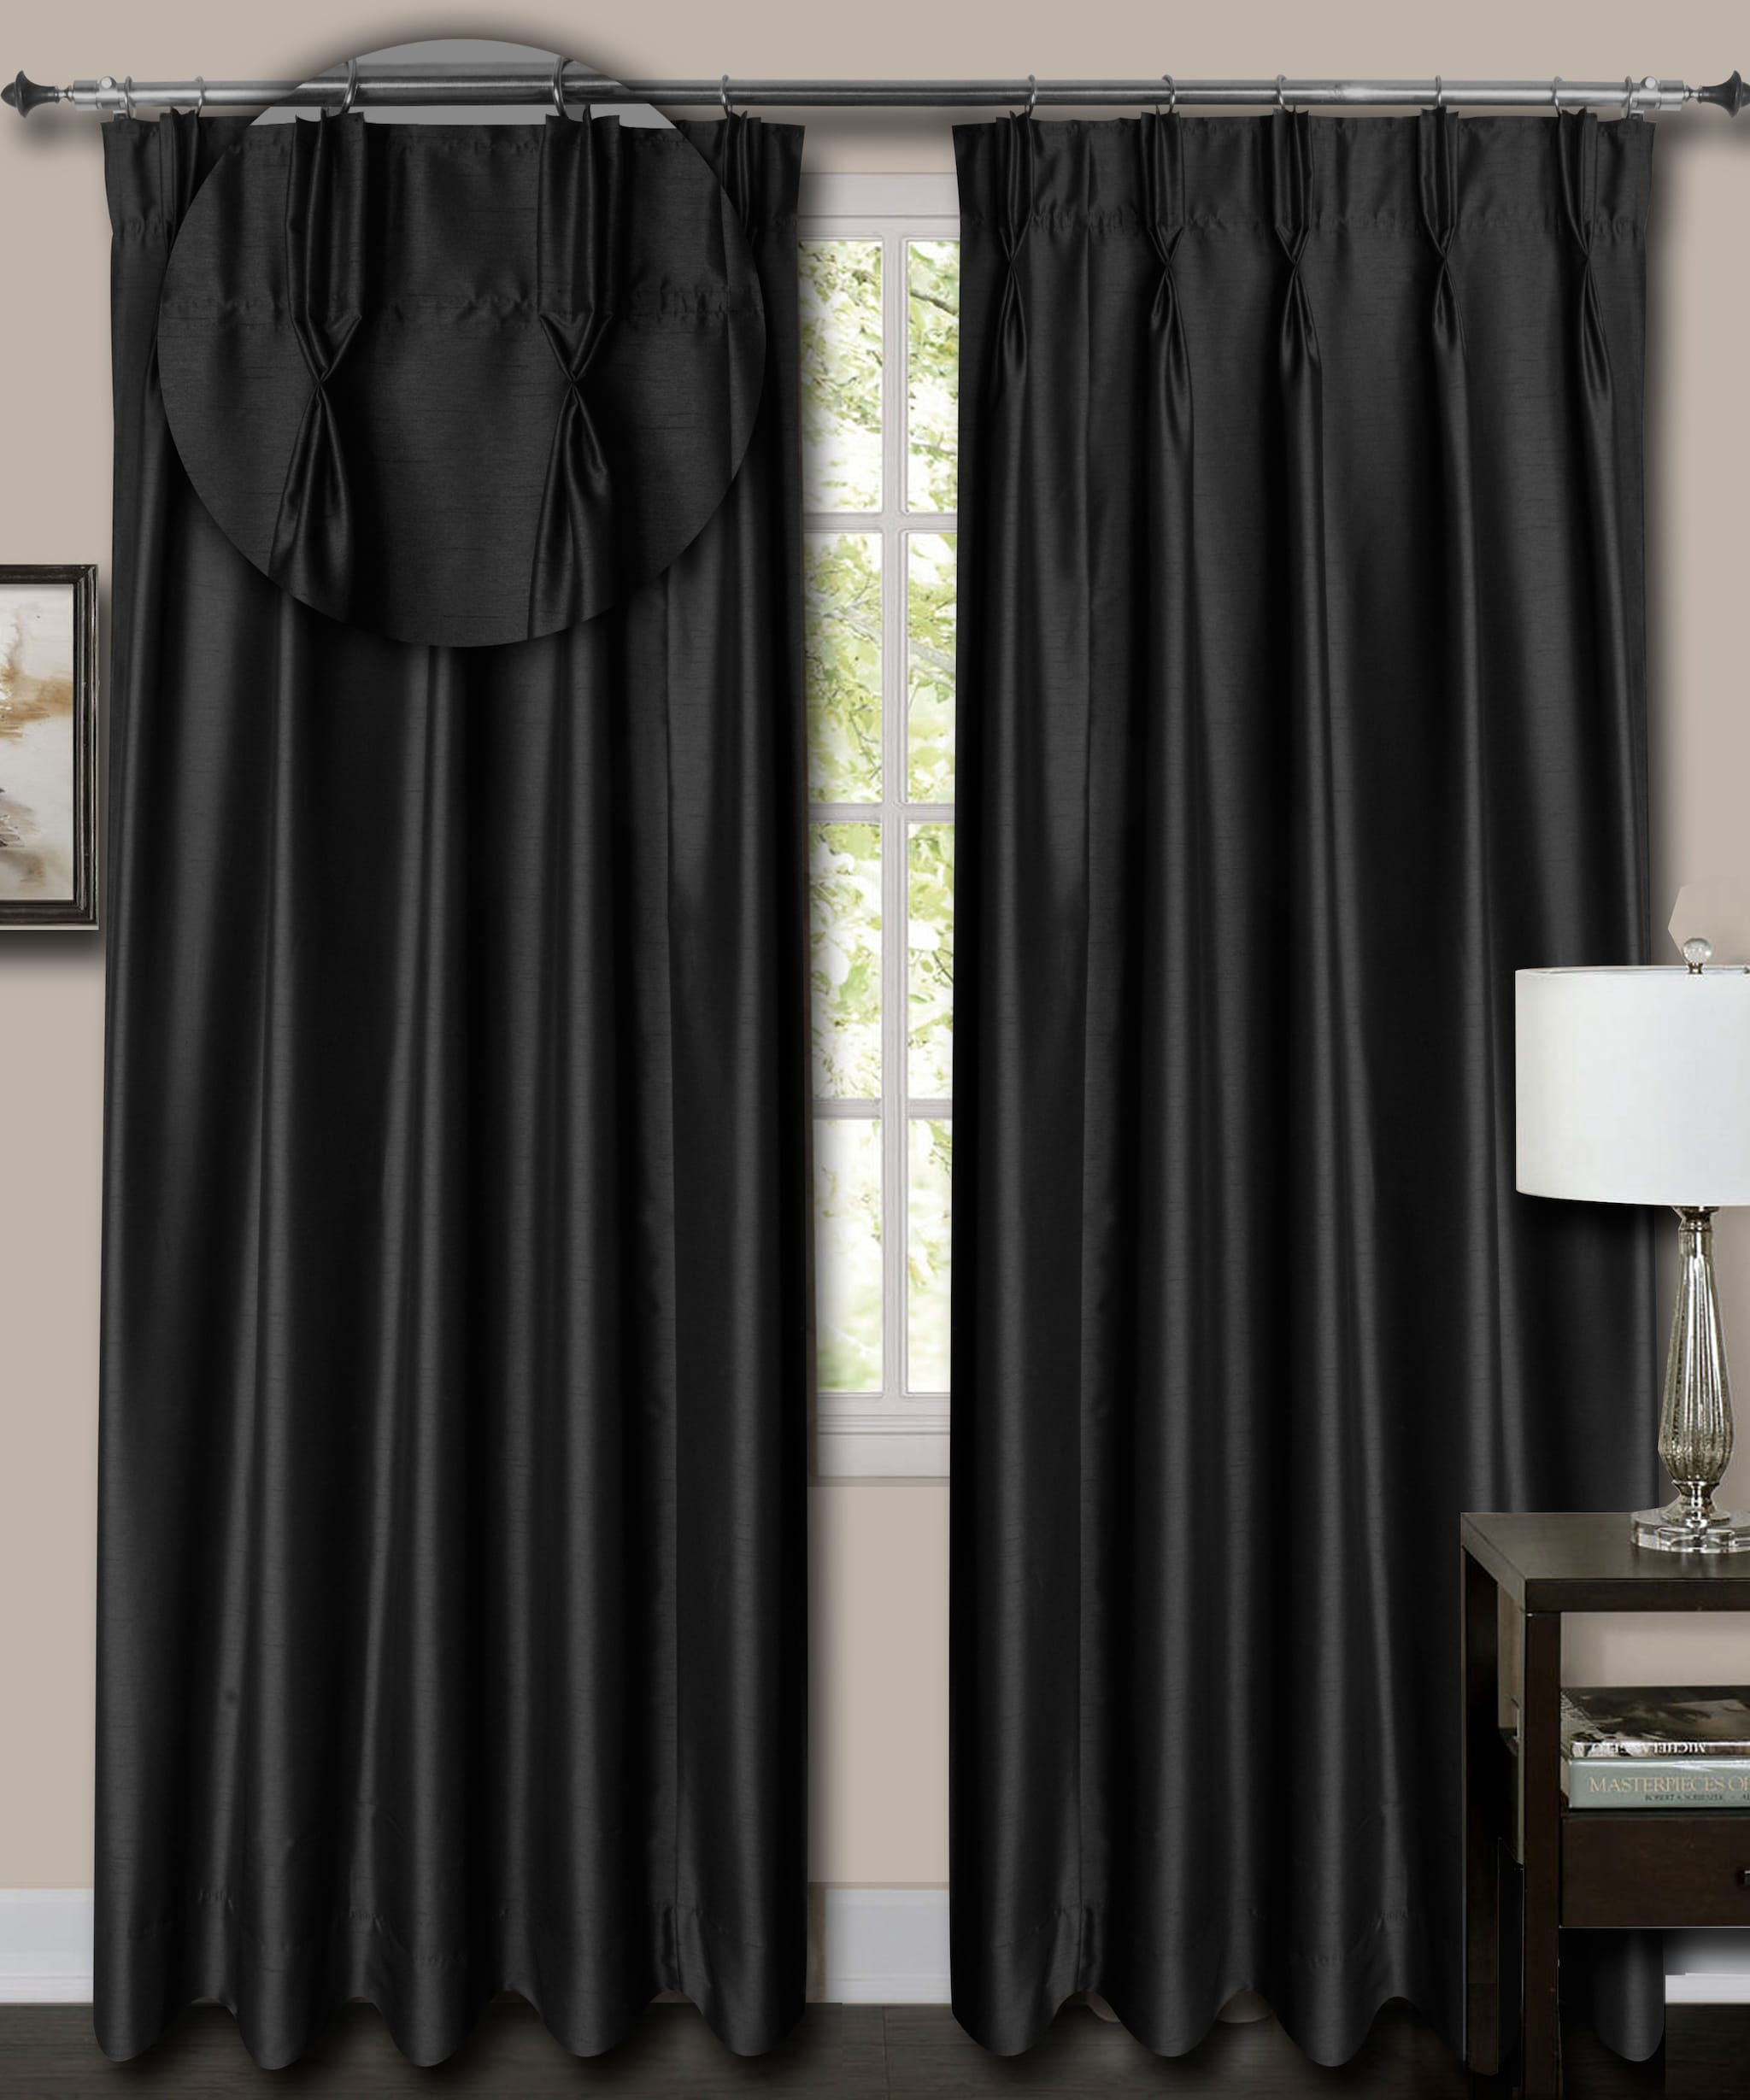 "French Pleat Top Black Faux Silk Dupioni Curtains. (24"" Wide,6 Feet Long,Blackout Lining)"